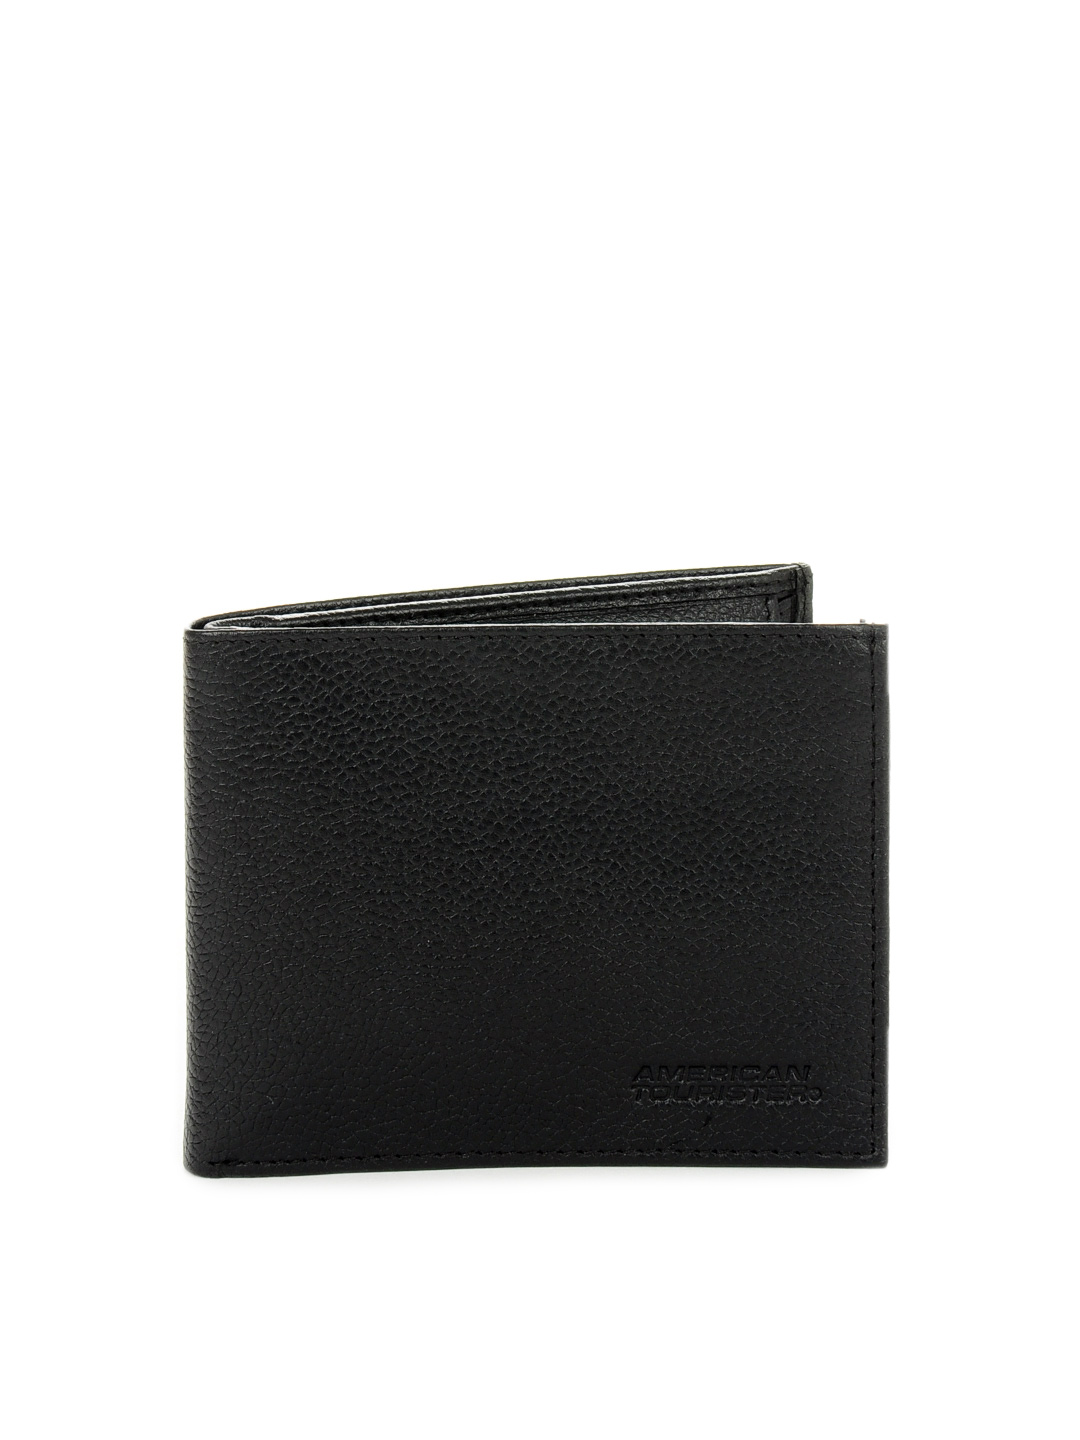 American Tourister Men Black Organiser Wallet